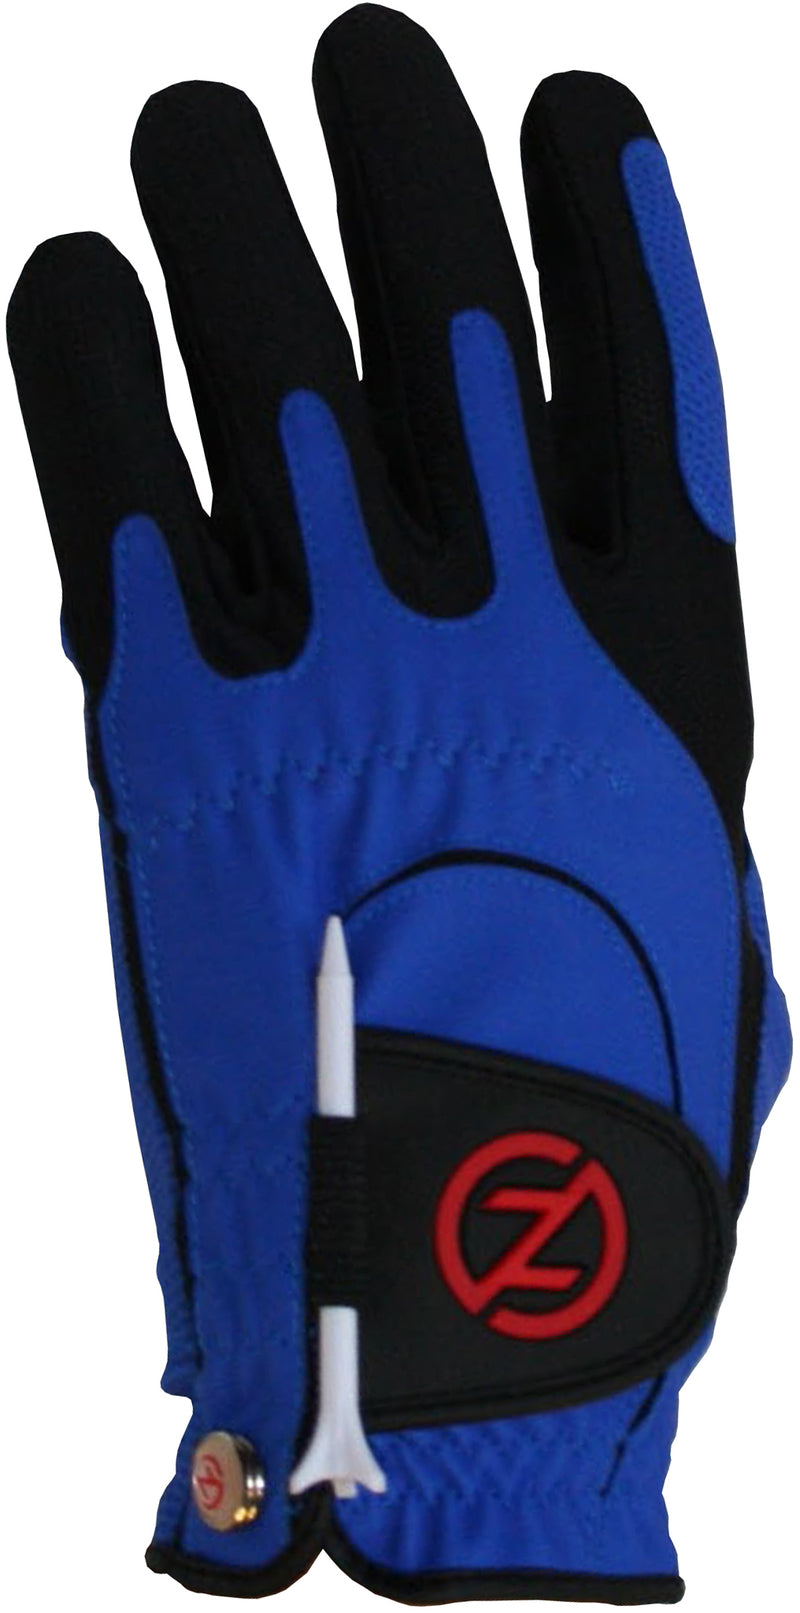 Zero Friction - Blue - Apparelly Gloves